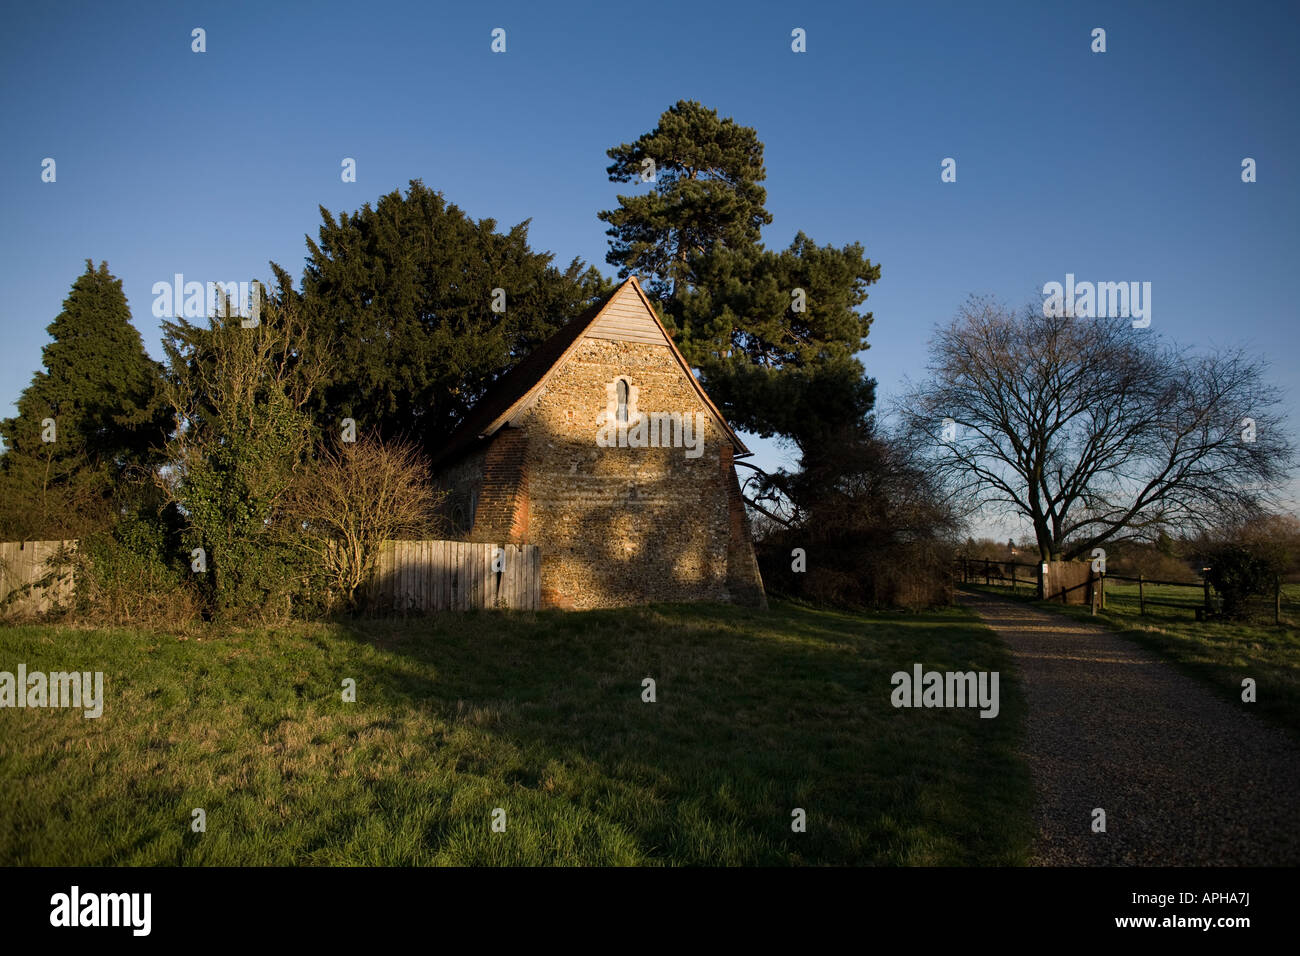 Harlowbury Chapel is the oldest building in Harlow, Essex, England dating from the 12th century from the Saxon period - Stock Image